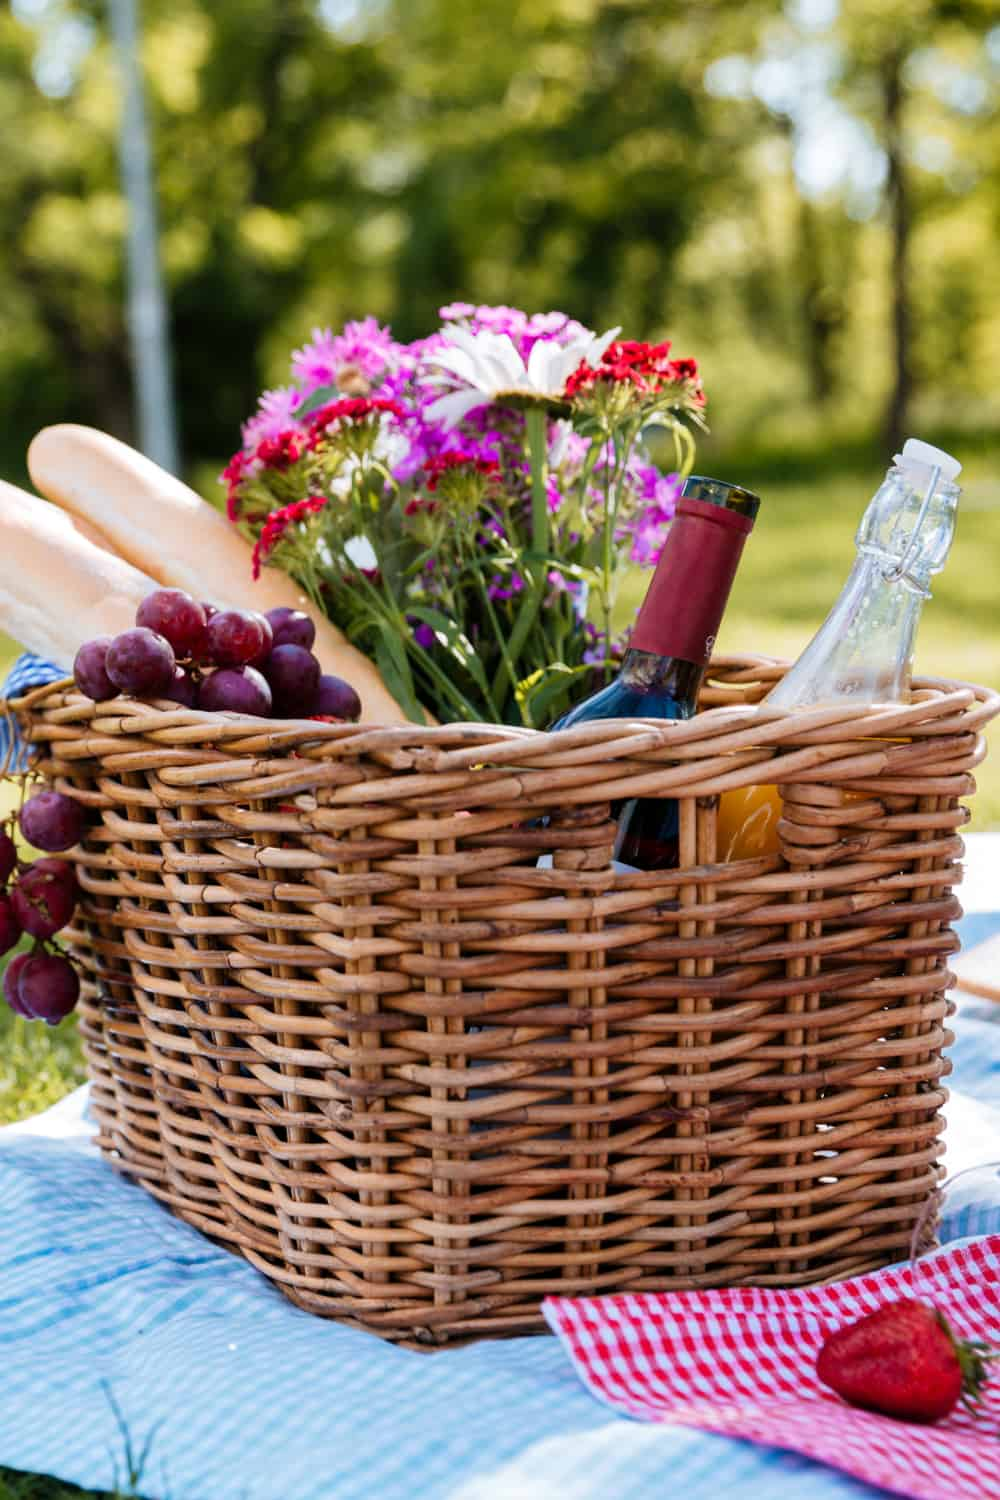 19 Homemade Picnic Basket Ideas You Can DIY Easily